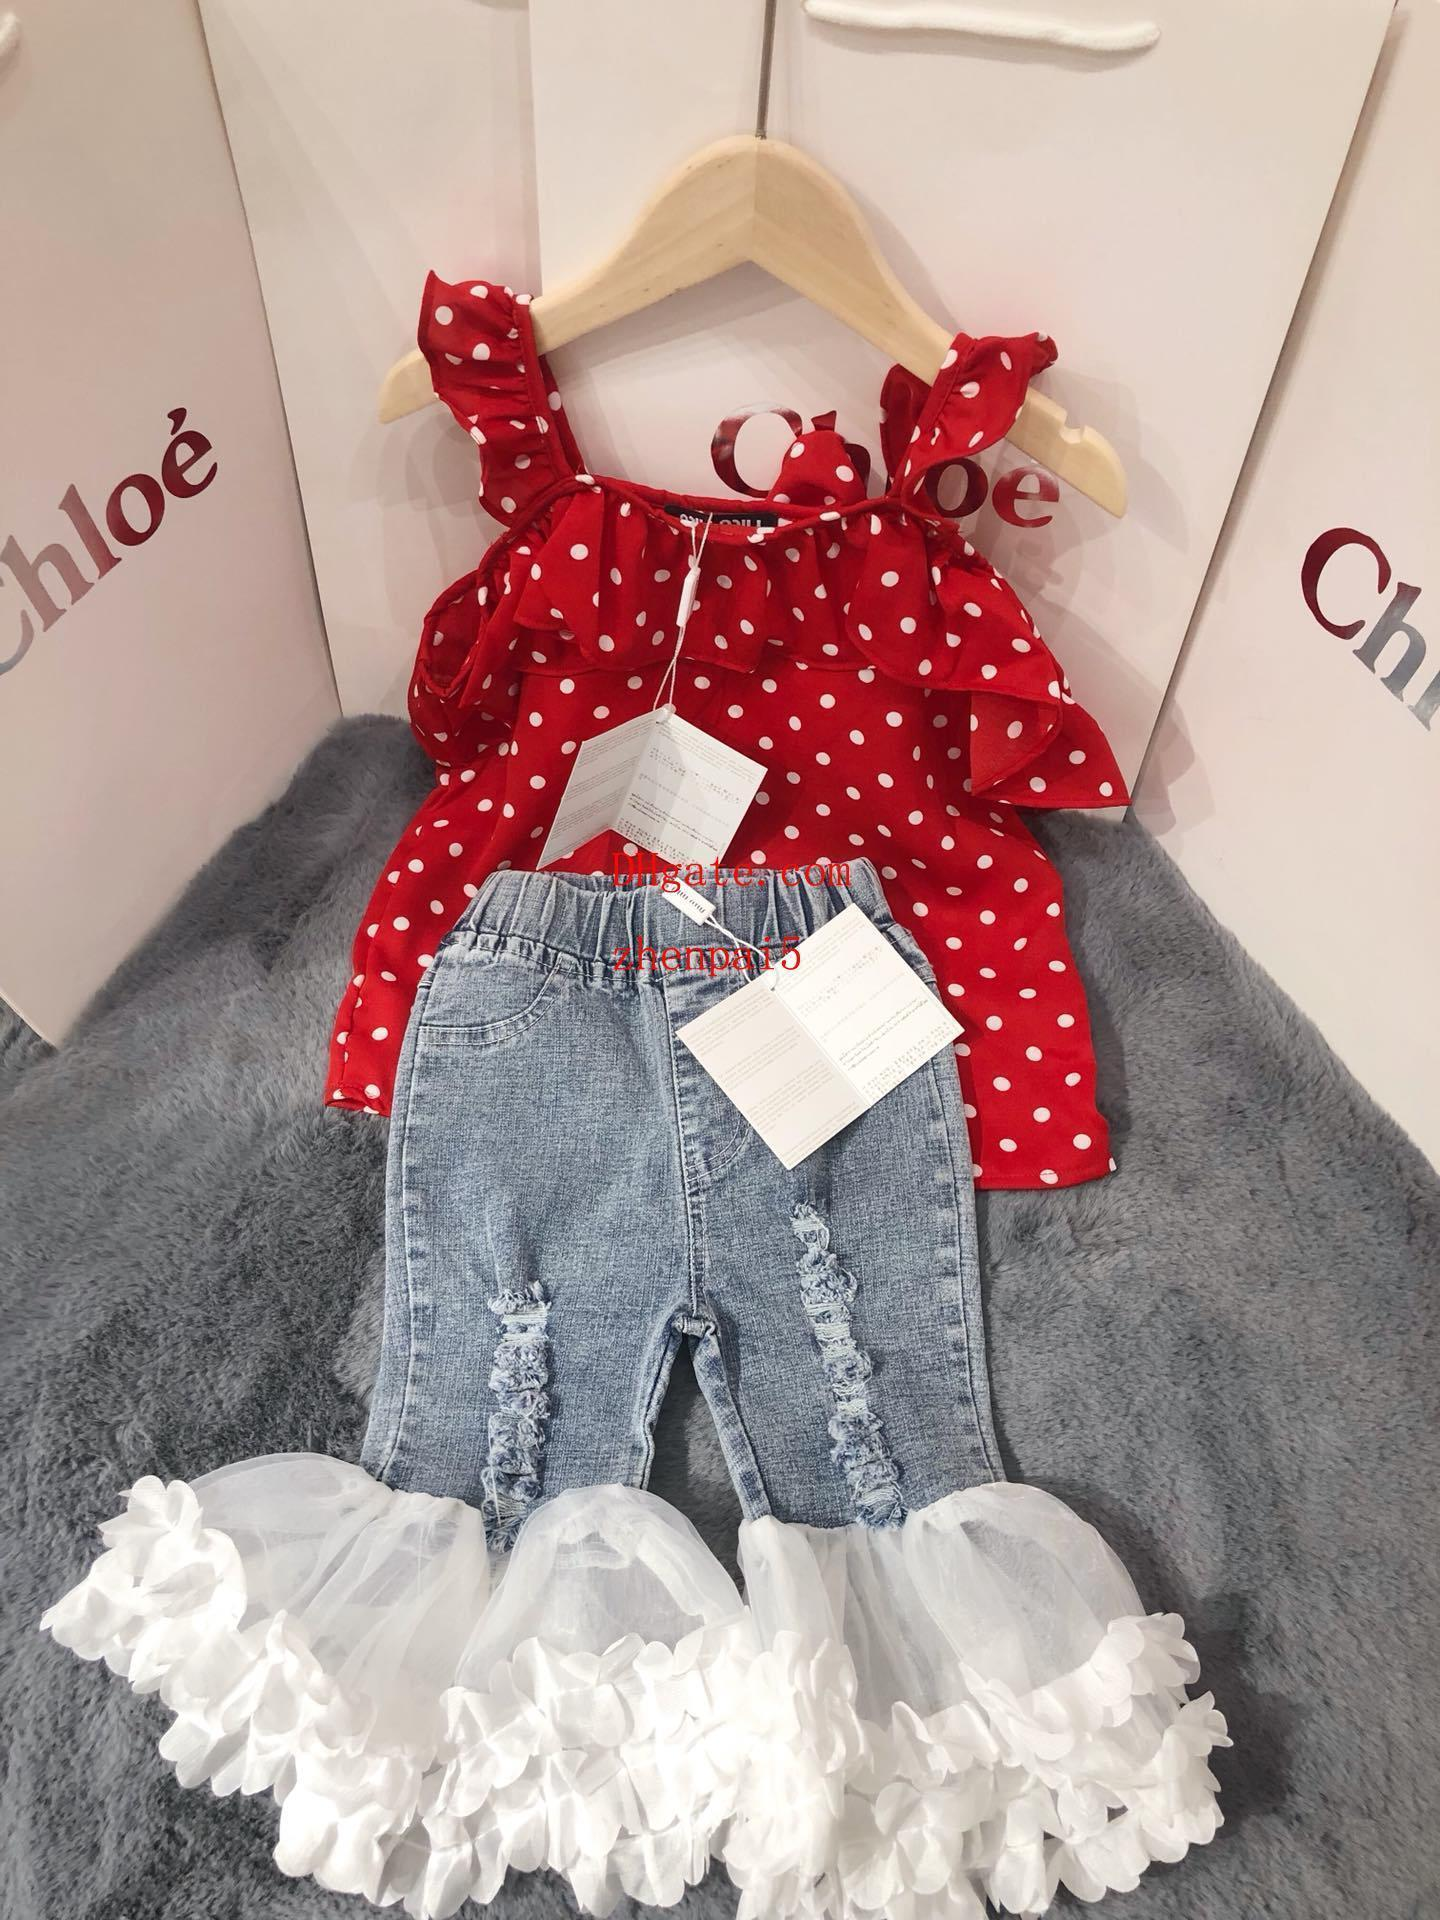 kids brand clothes girls baby girl clothes tank top jeans pantalones cortos vetement bebe Girls jeans set Large lace flared pants baby